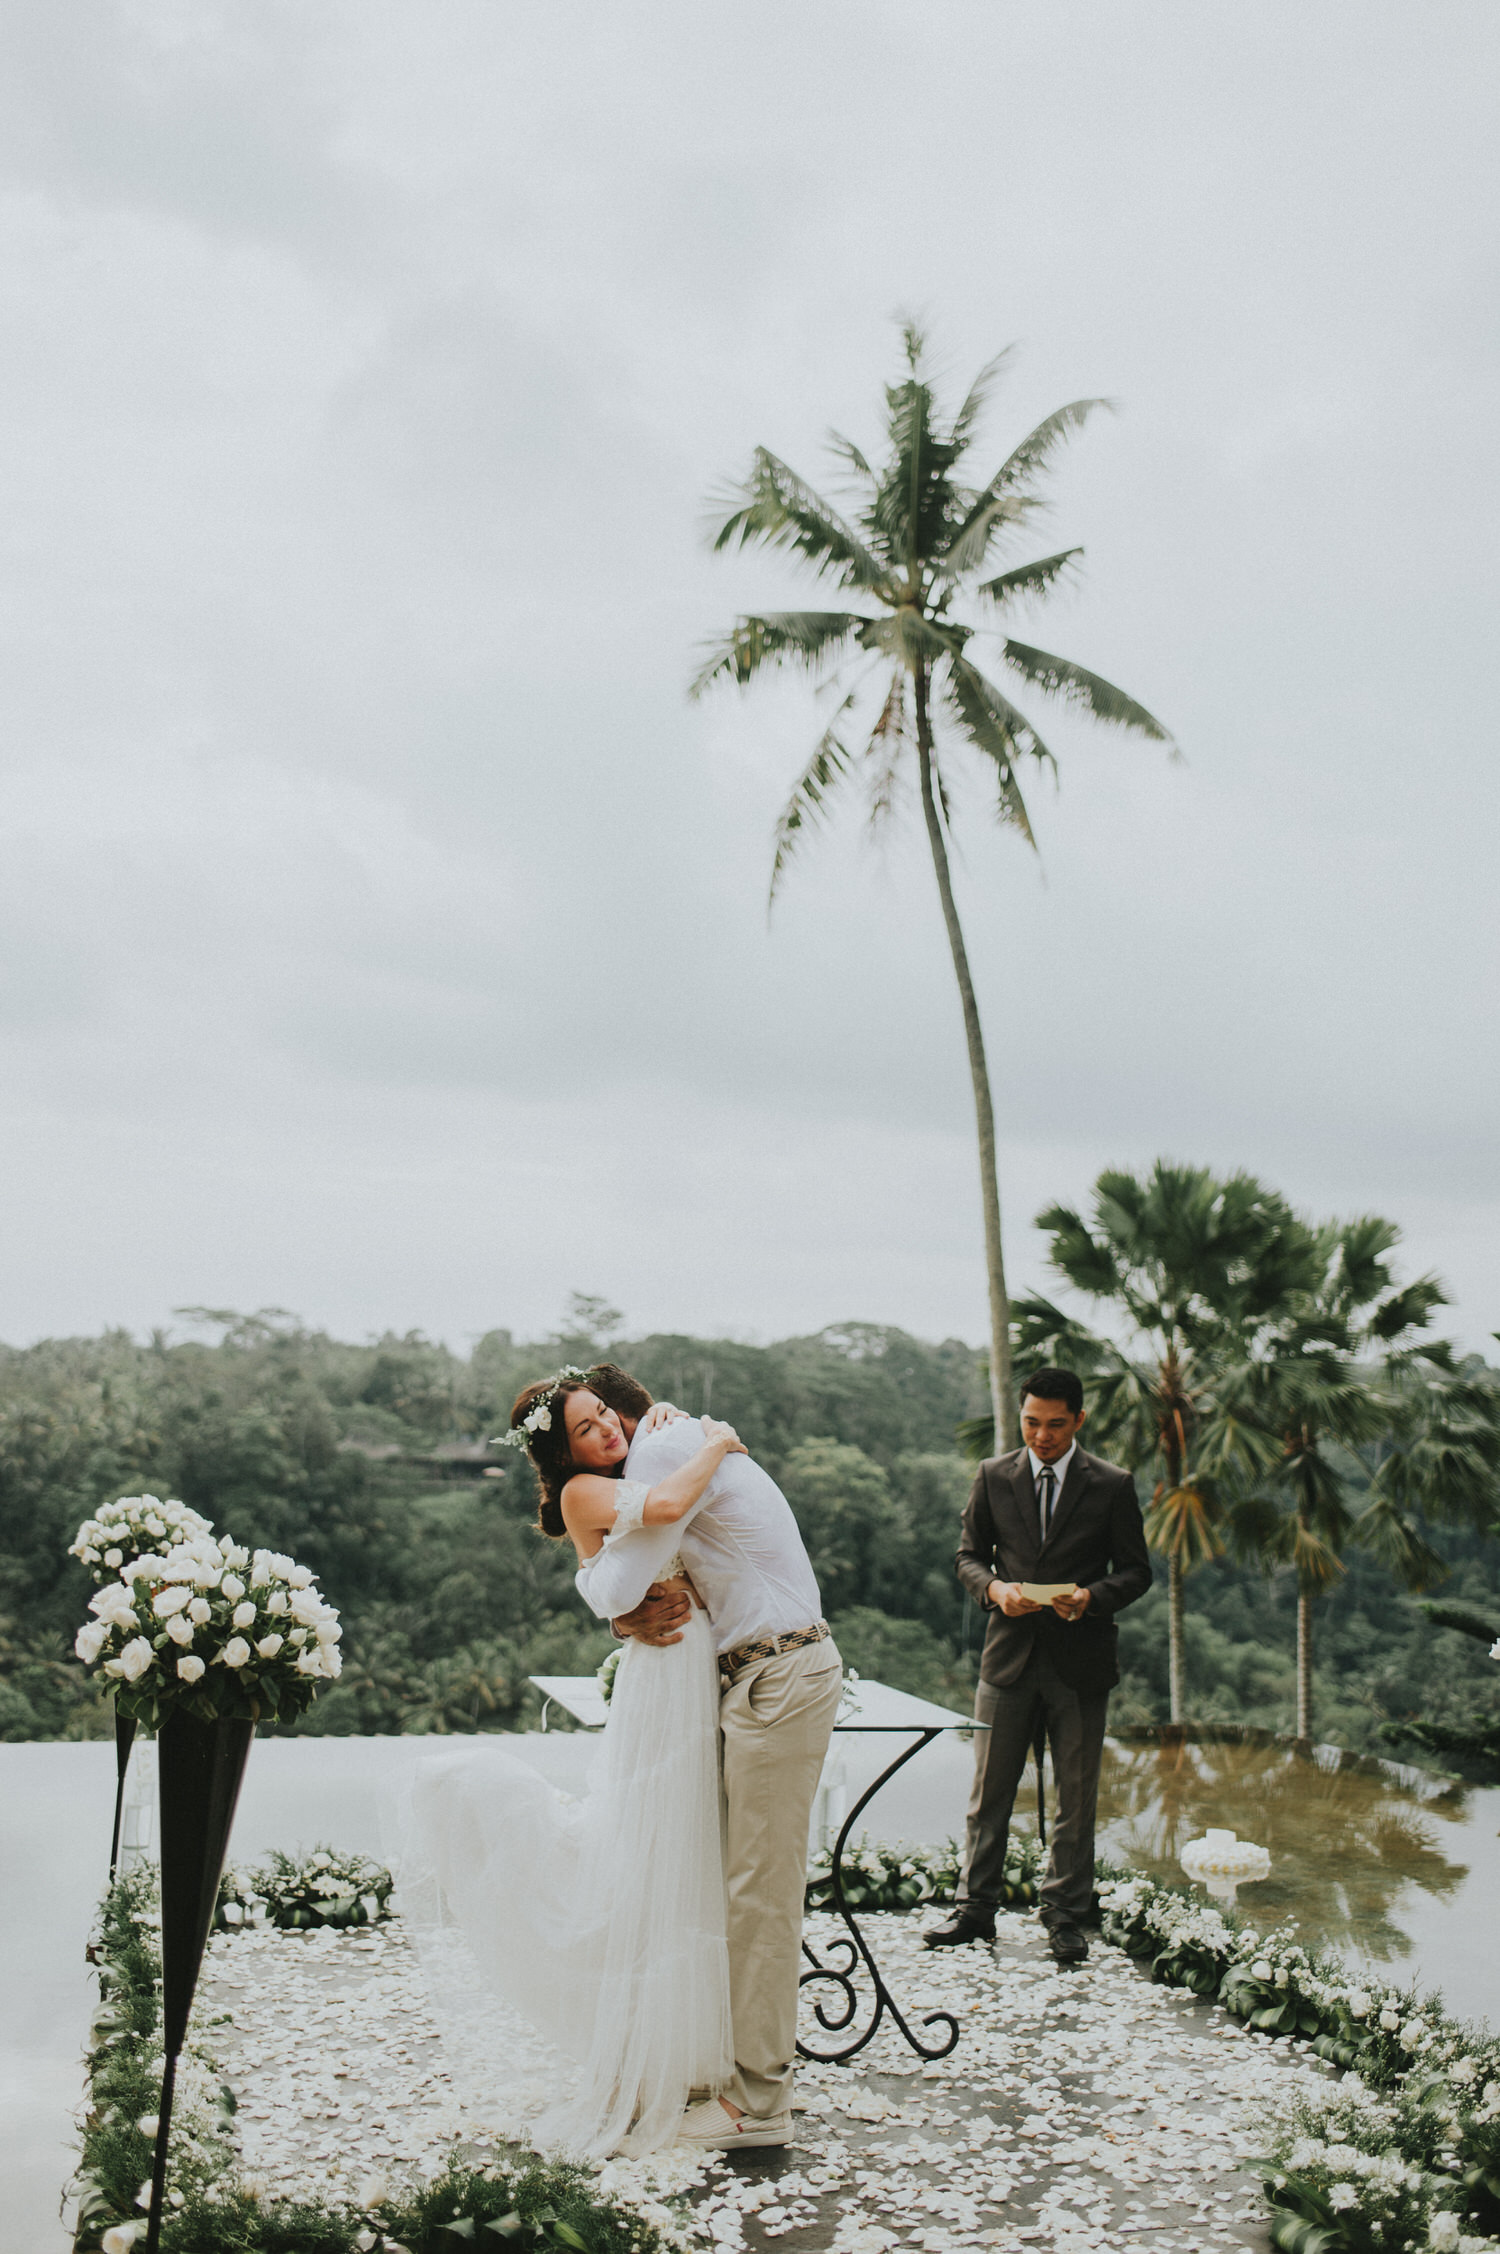 bali wedding - elopement - ubud wedding - diktatphotography - olga + Jason - 55